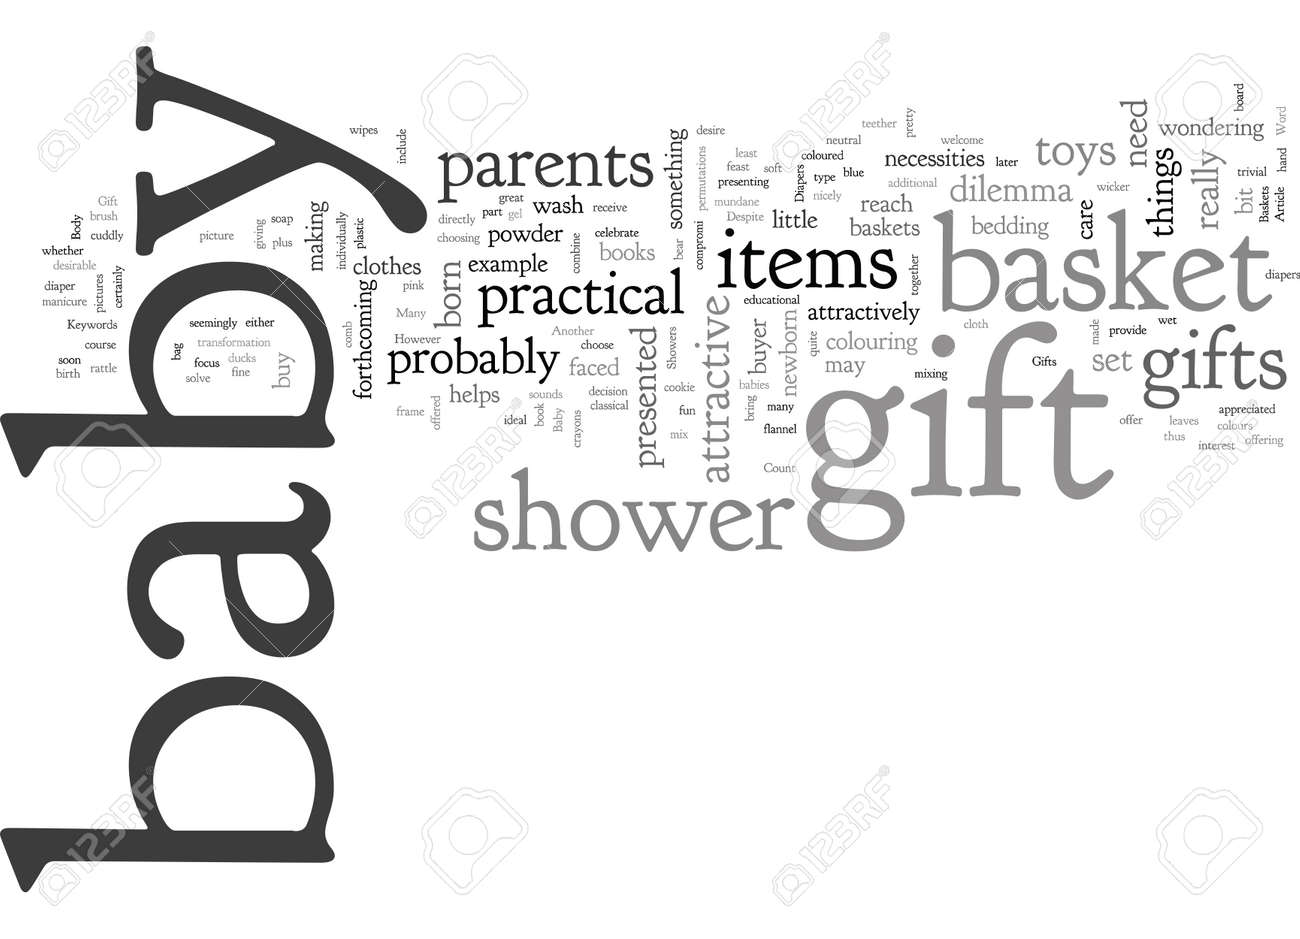 Baby Gift Baskets For Showers And Newborn Gifts - 132214738